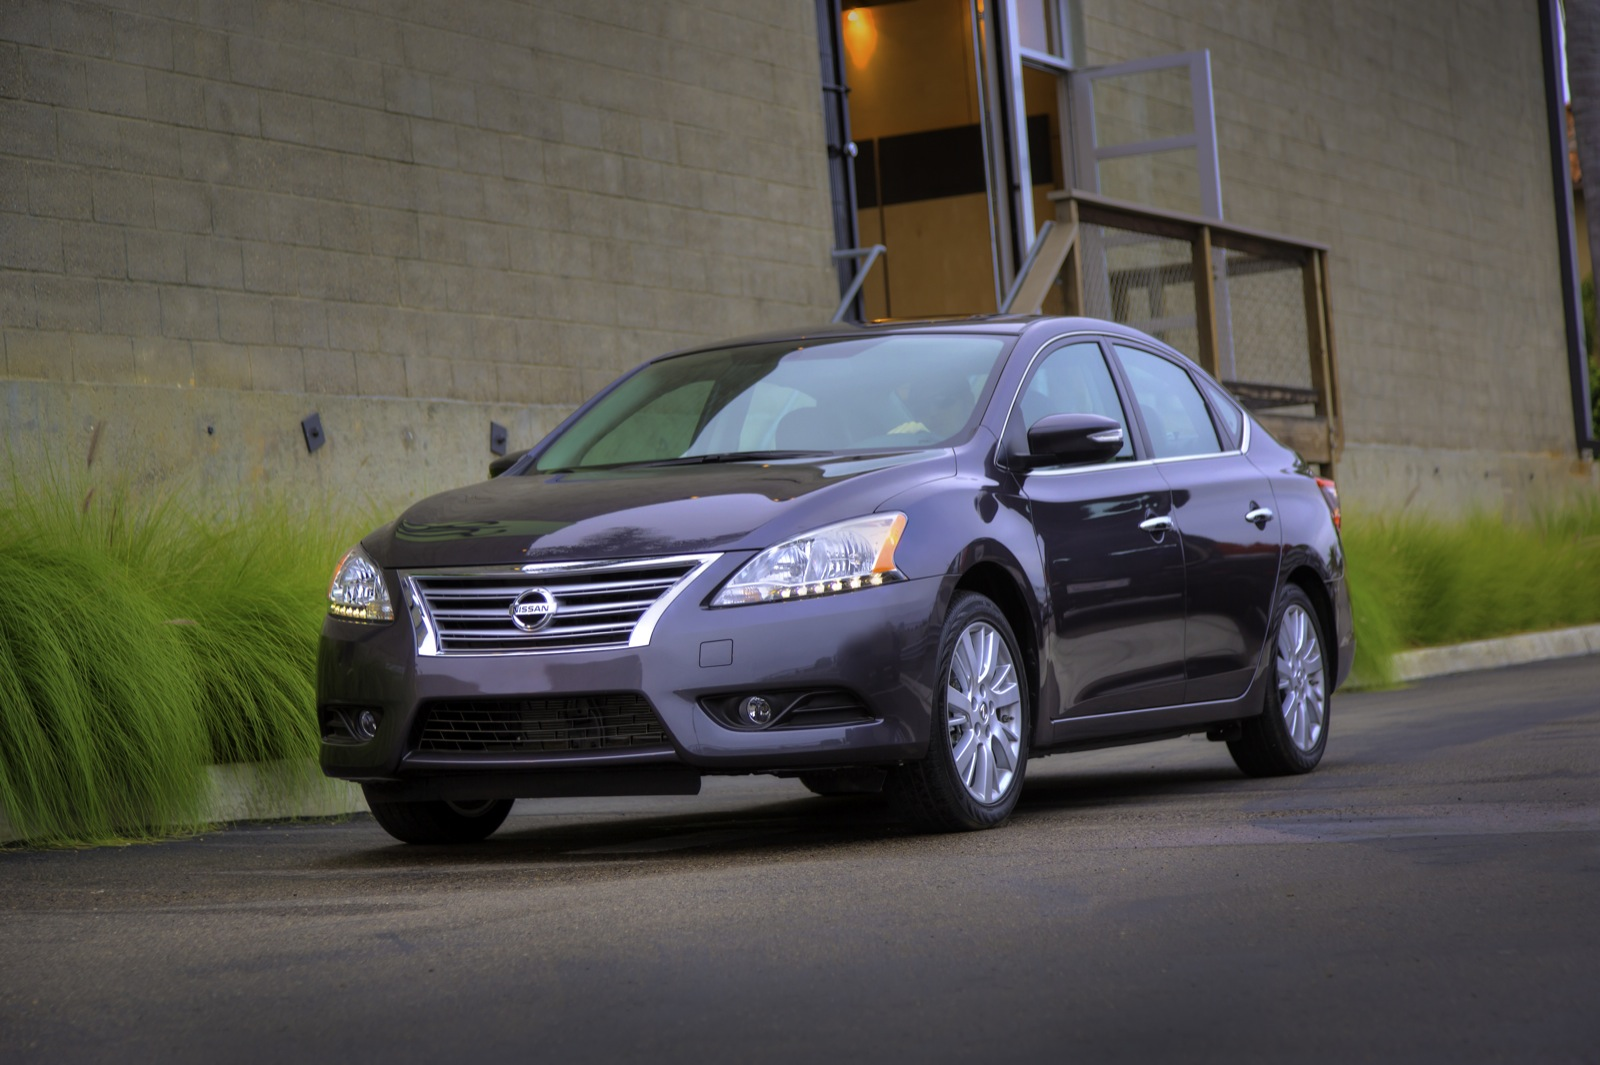 2014 Nissan Sentra Performance Review The Car Connection